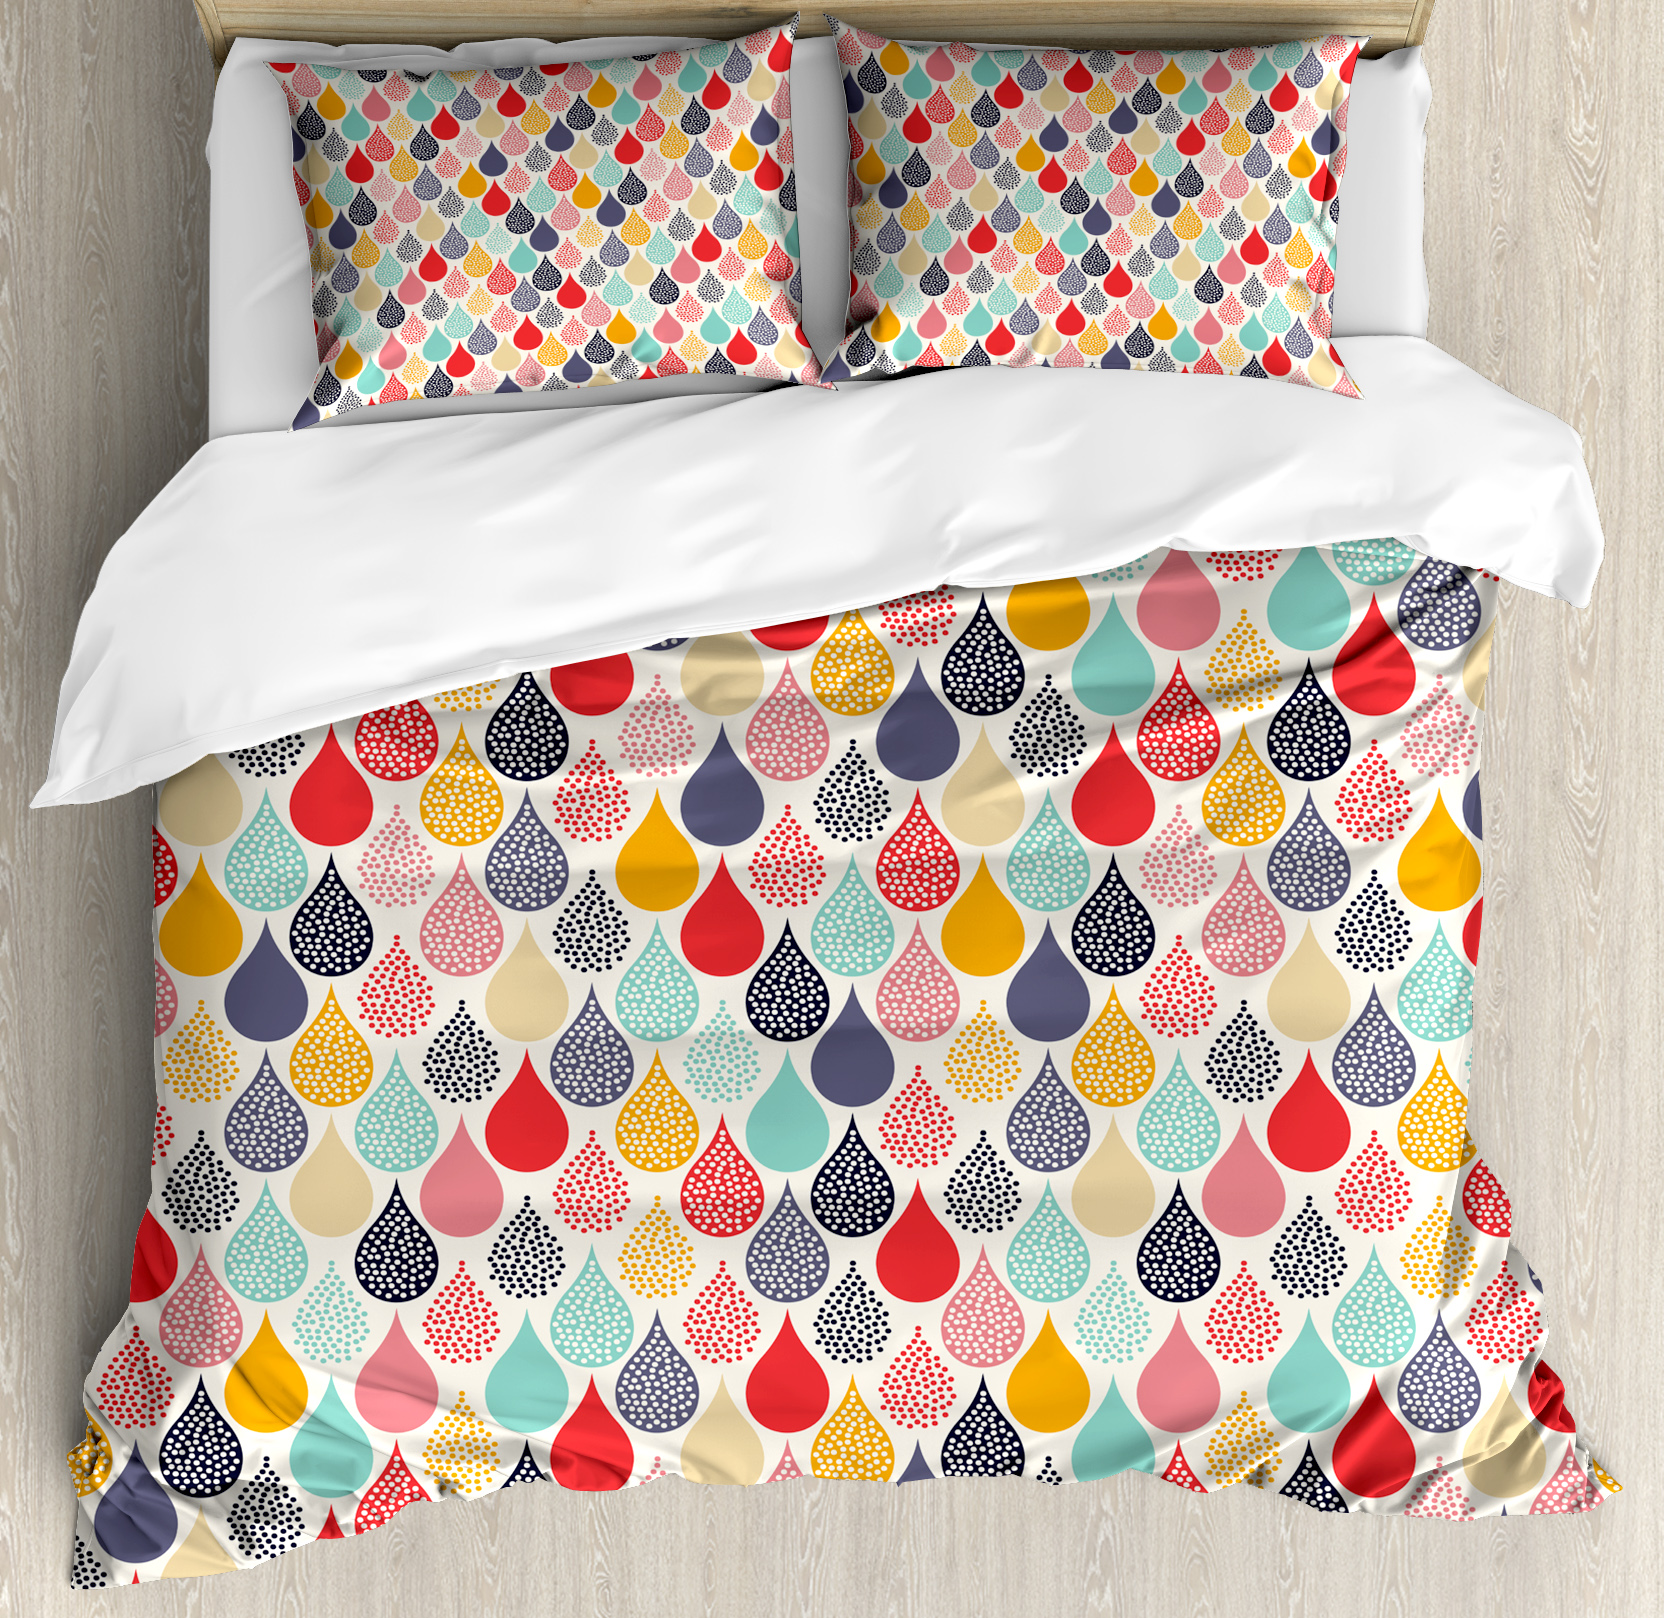 Geometric King Size Duvet Cover Set, Raindrops Doodle Style Cute Creative Leaf Shaped... by Kozmos